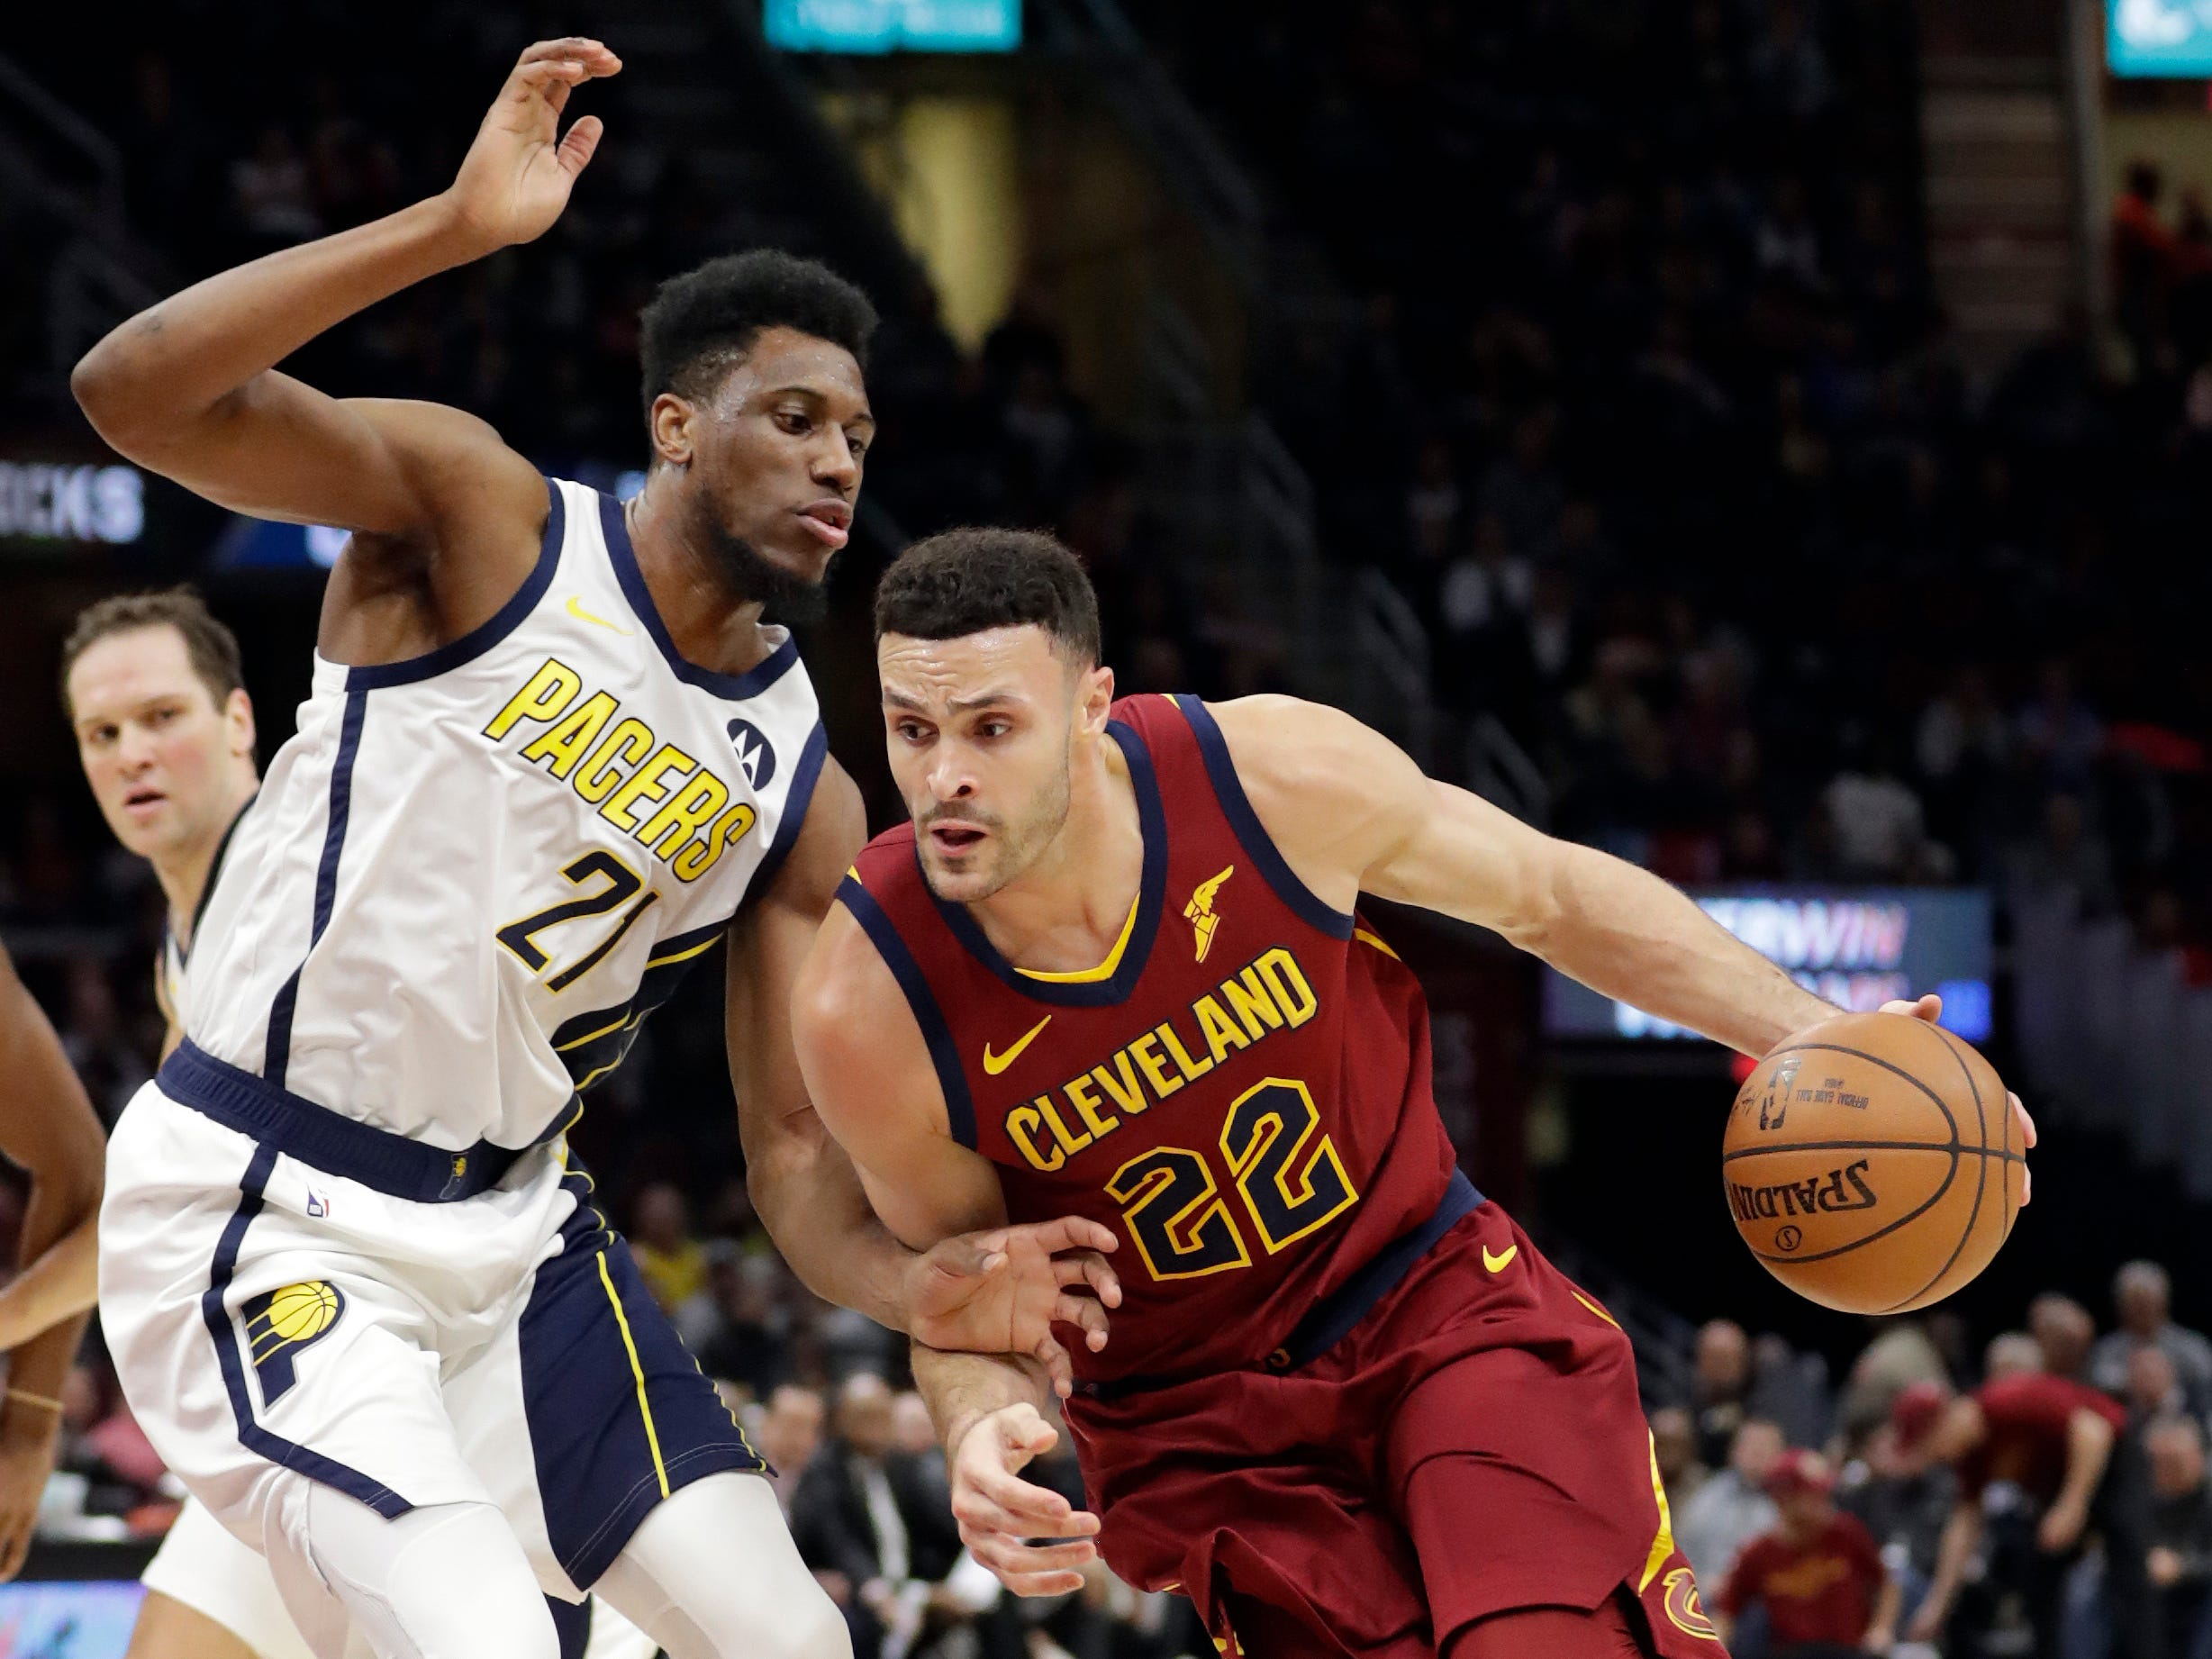 Cleveland Cavaliers' Larry Nance Jr. (22) drives to the basket against Indiana Pacers' Thaddeus Young (21) during the first half of an NBA basketball game Tuesday, Jan. 8, 2019, in Cleveland.